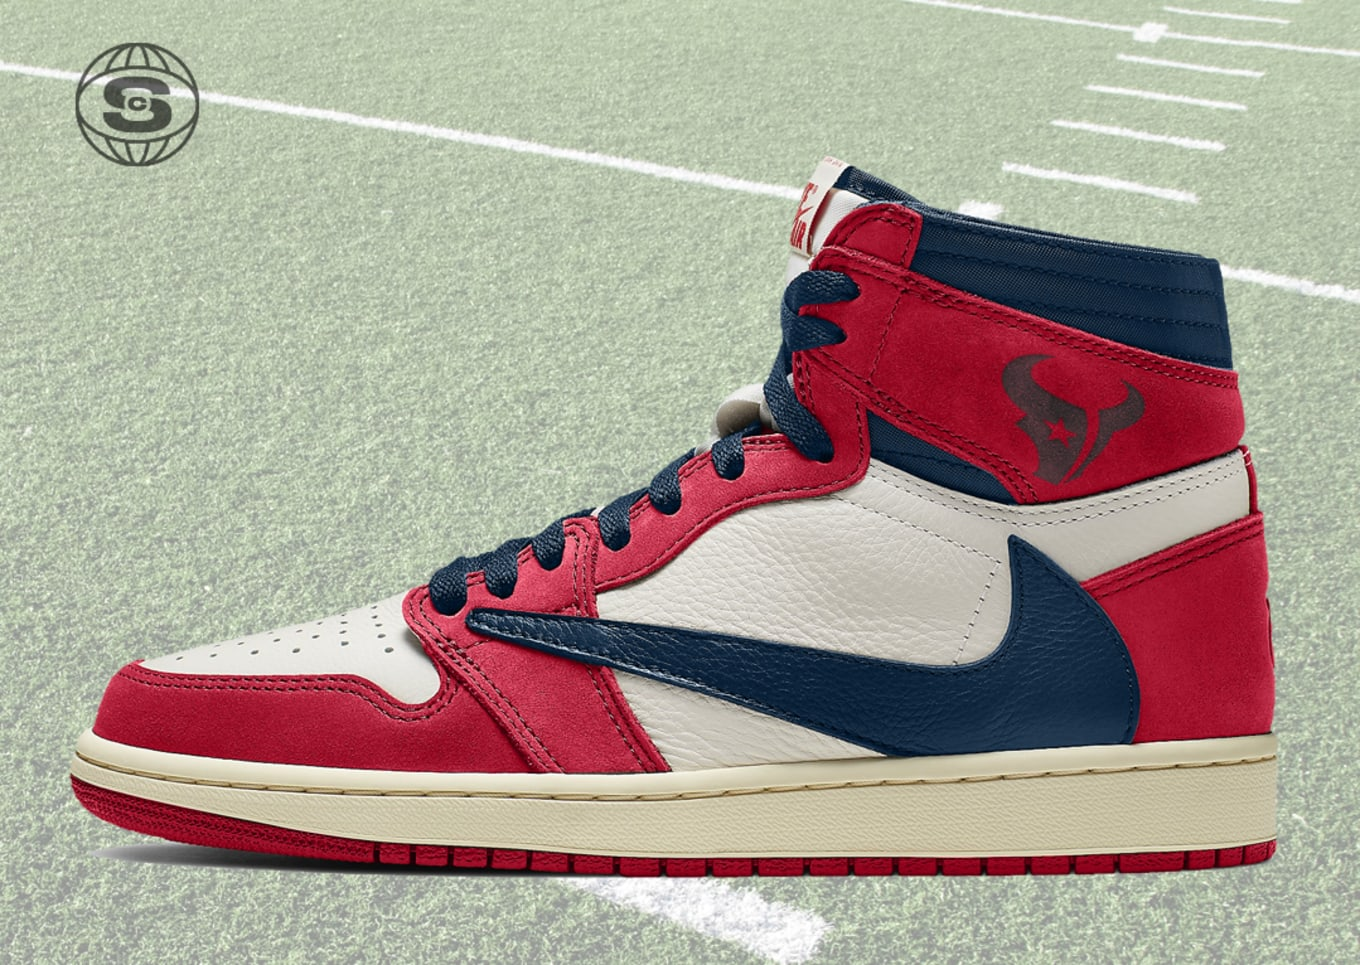 on sale fa2eb d0651 Sneakers Inspired by NFL Teams | Sole Collector